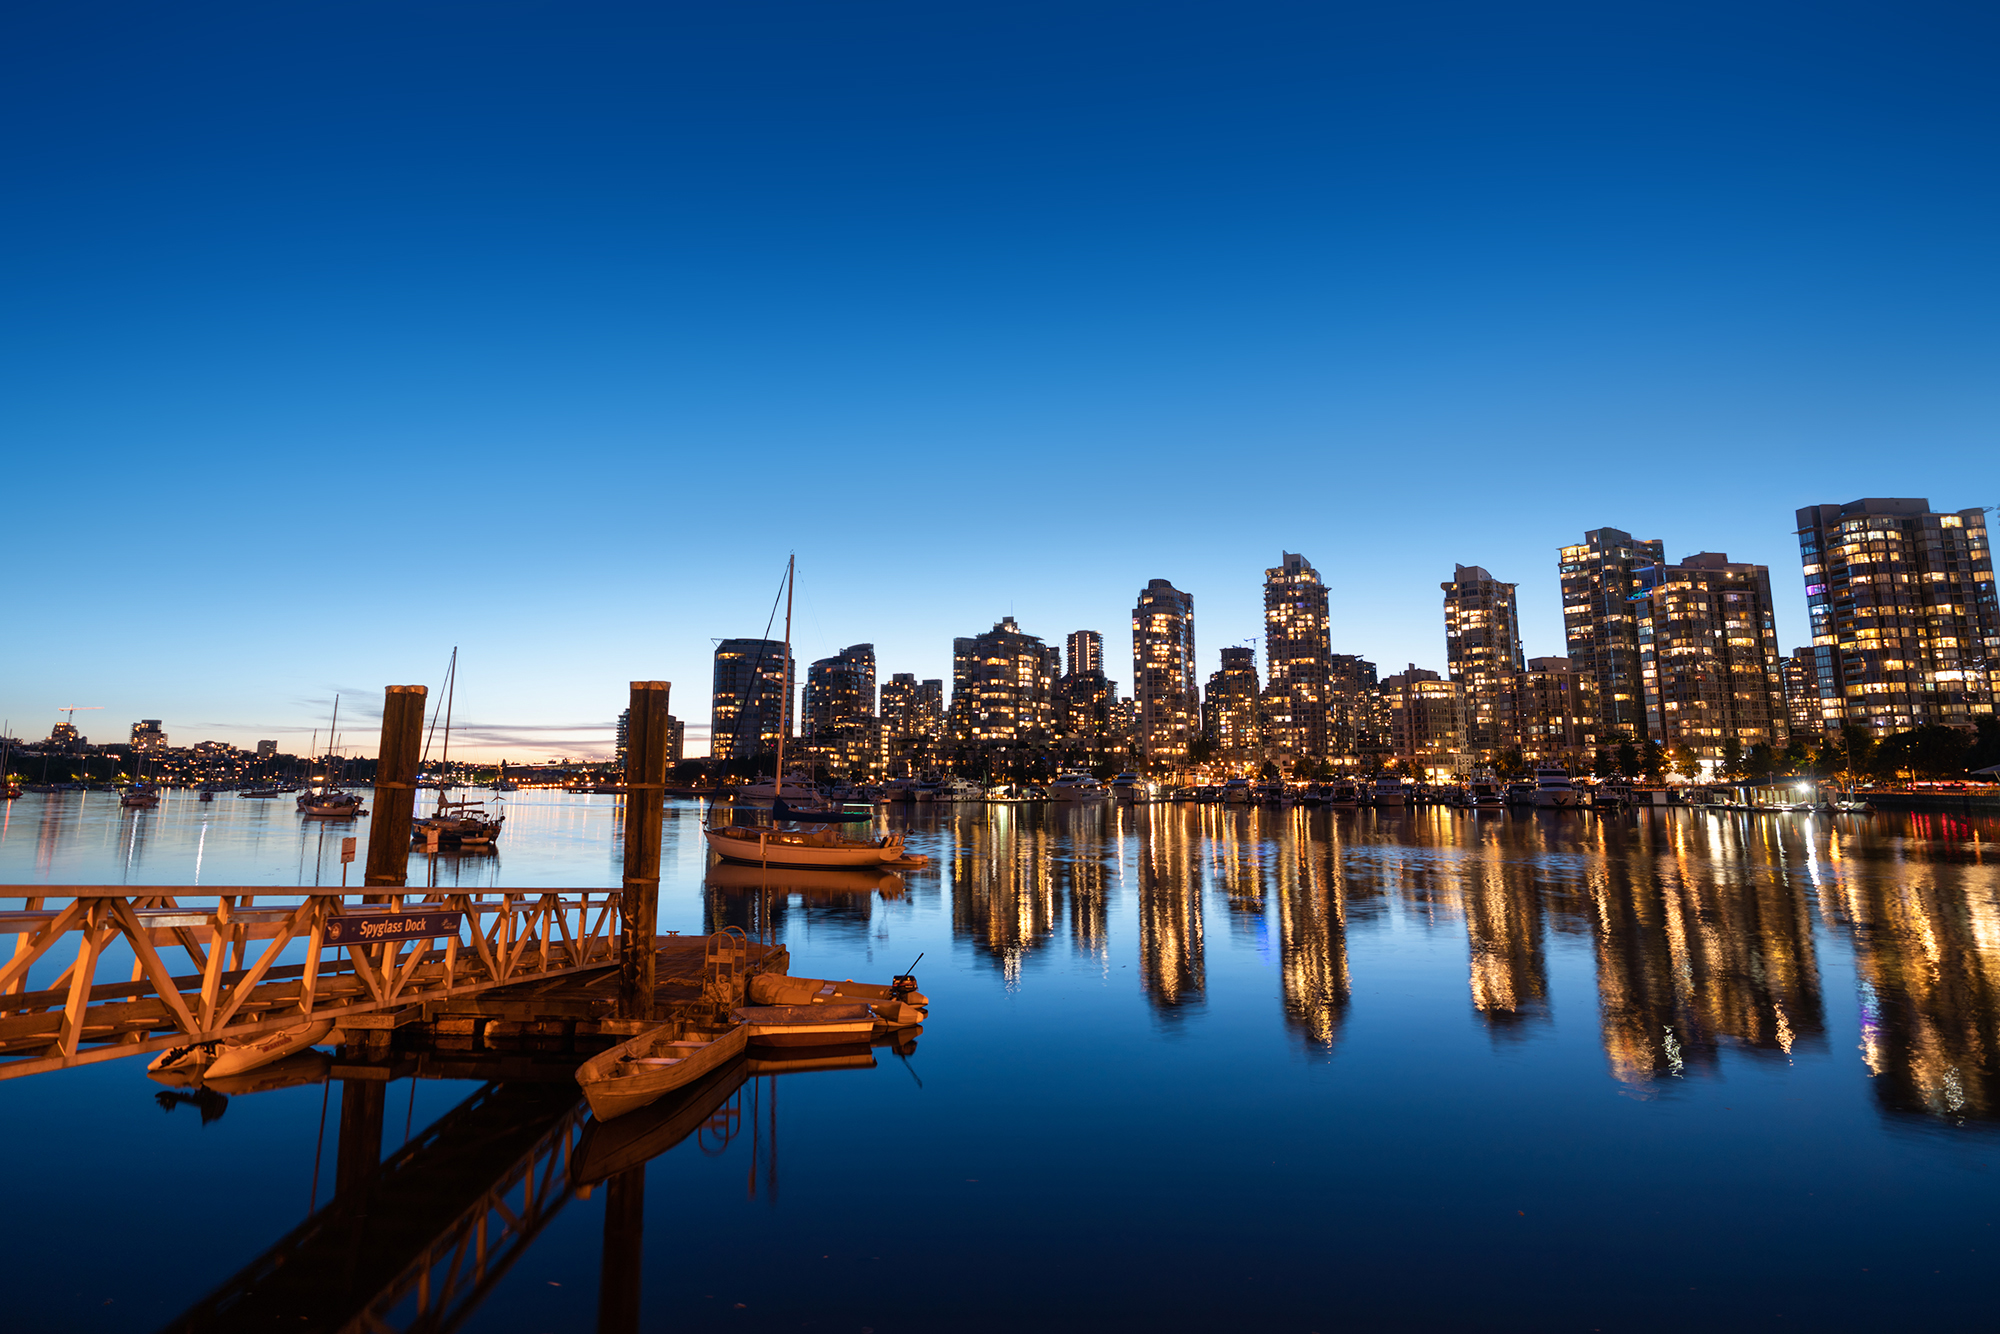 Vancouver at night from Spyglass Dock.